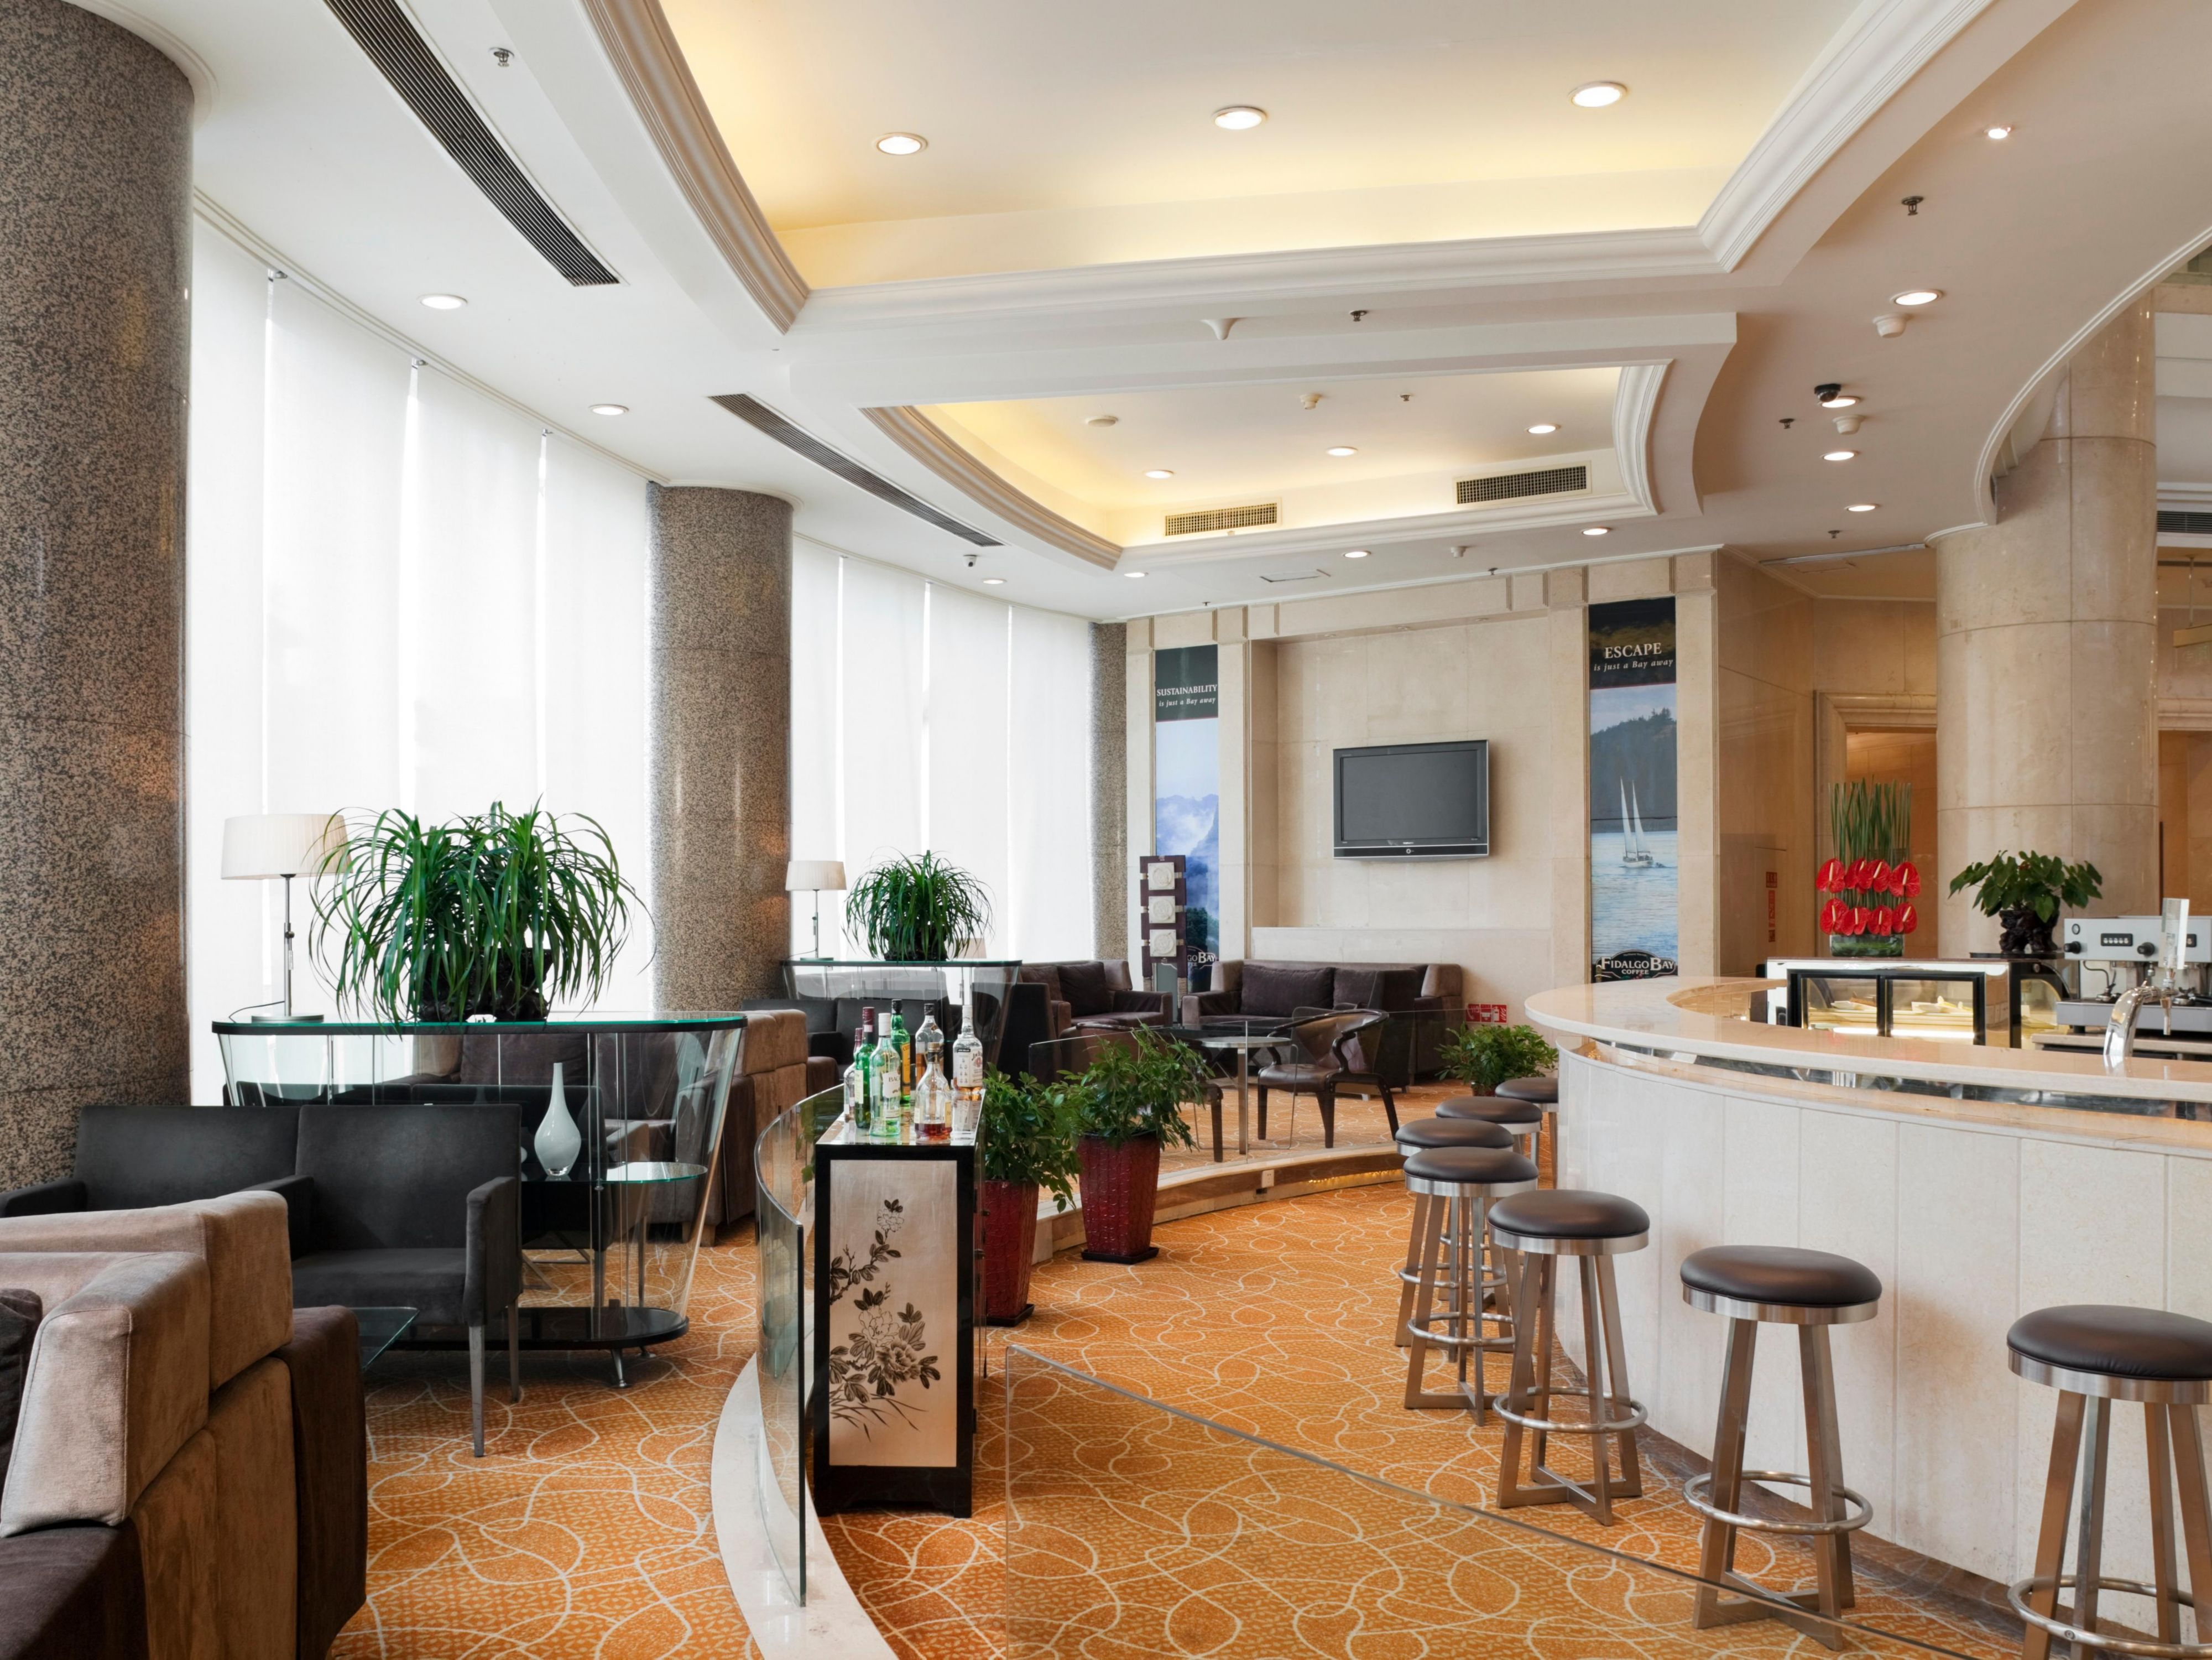 Lobby Lounge of Holiday Inn Beijing Chang An West